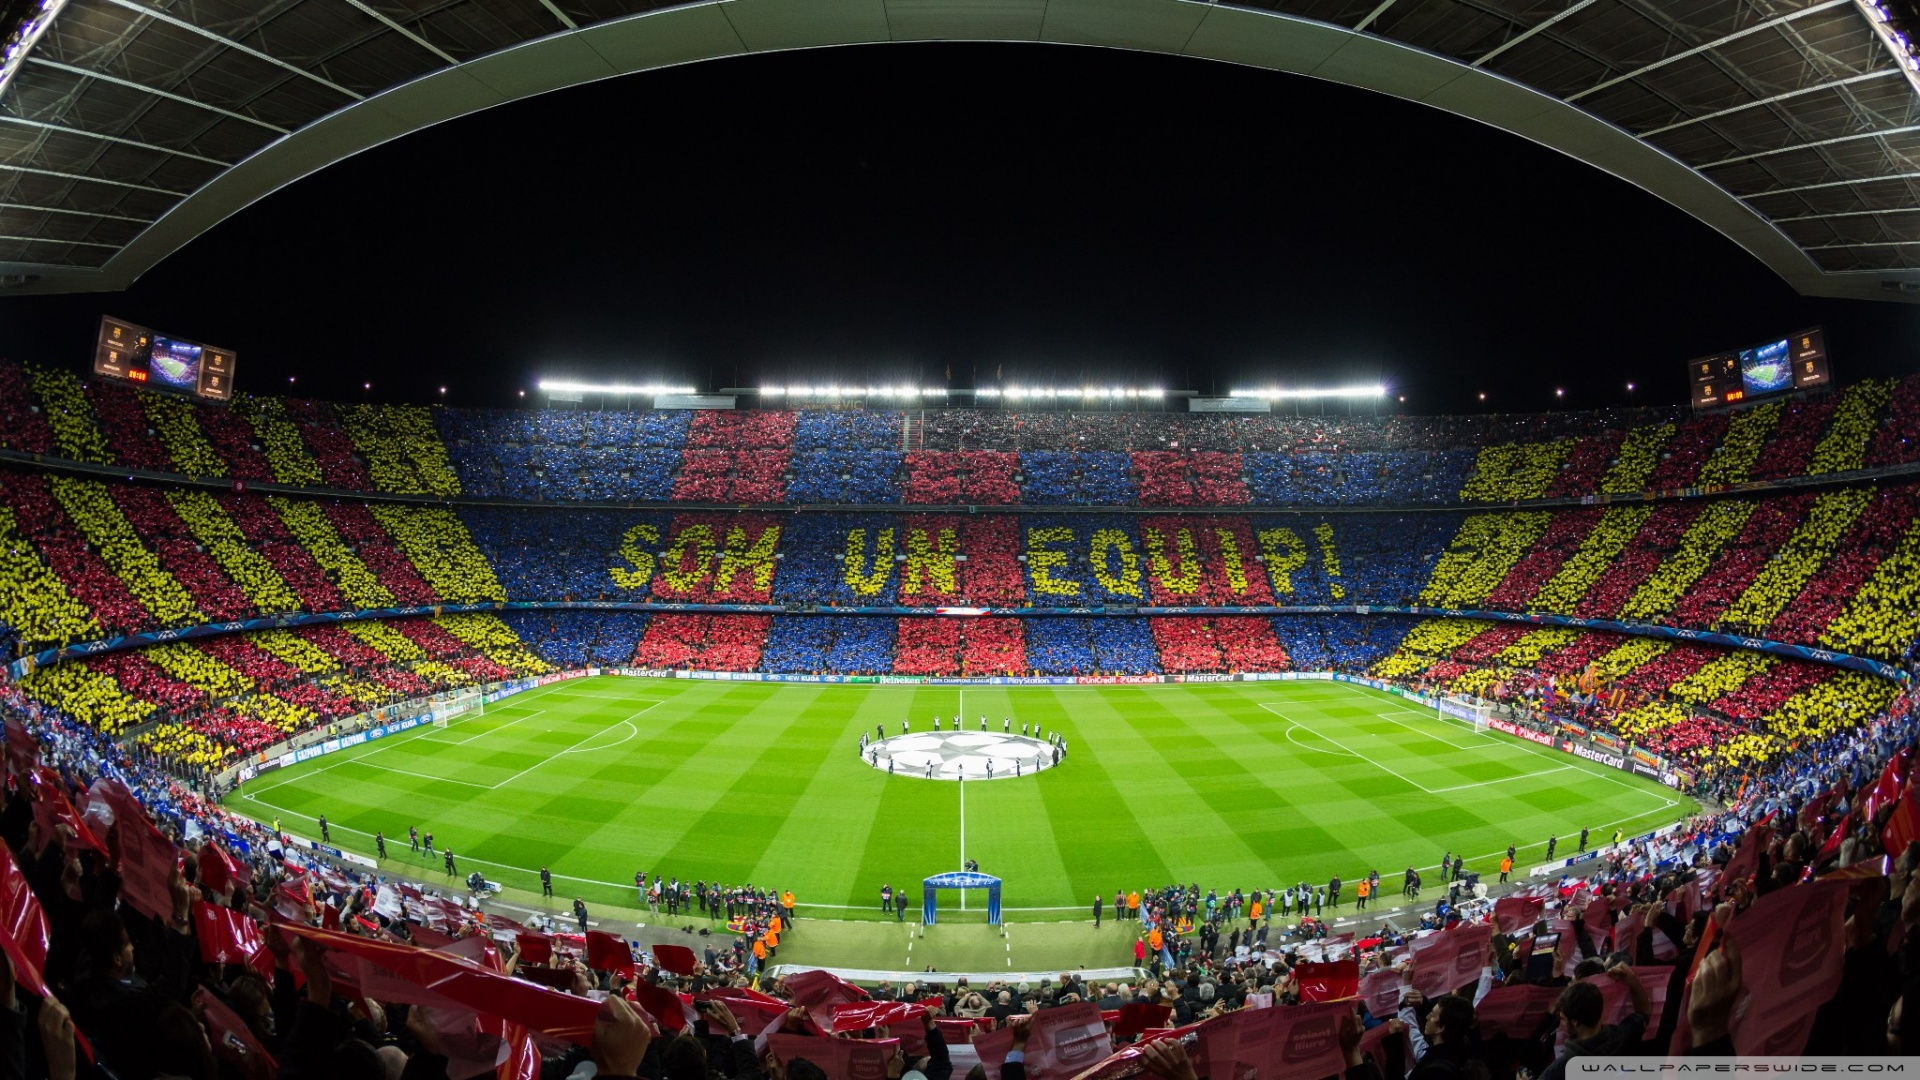 https://redmago.com/wp-content/uploads/2012/10/camp-nou-1.jpg